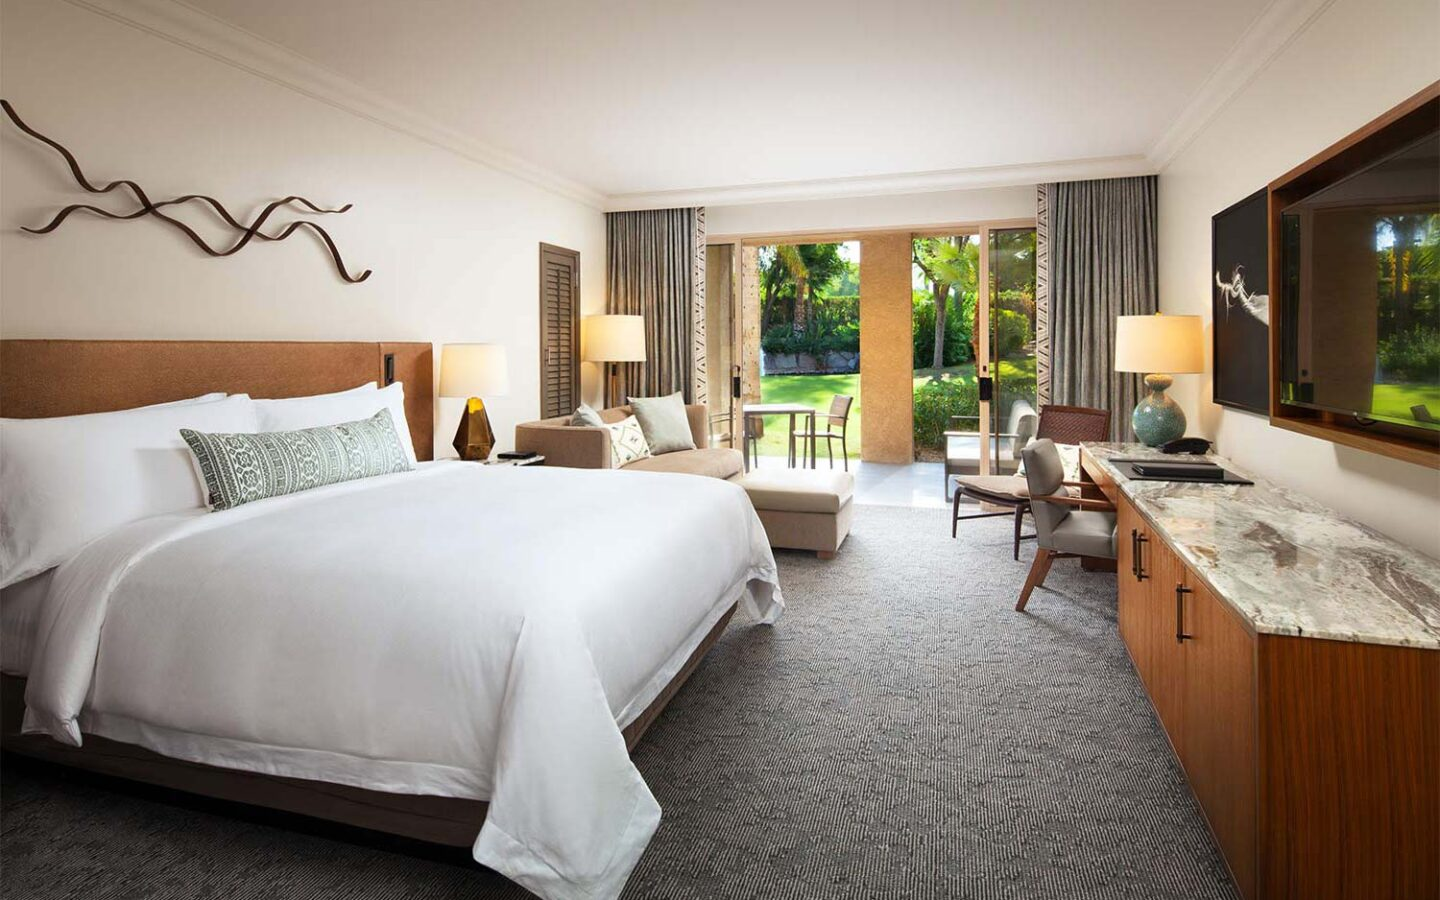 a luxury hotel room with a king size bed, sitting area, and patio doors opening to an outdoor garden